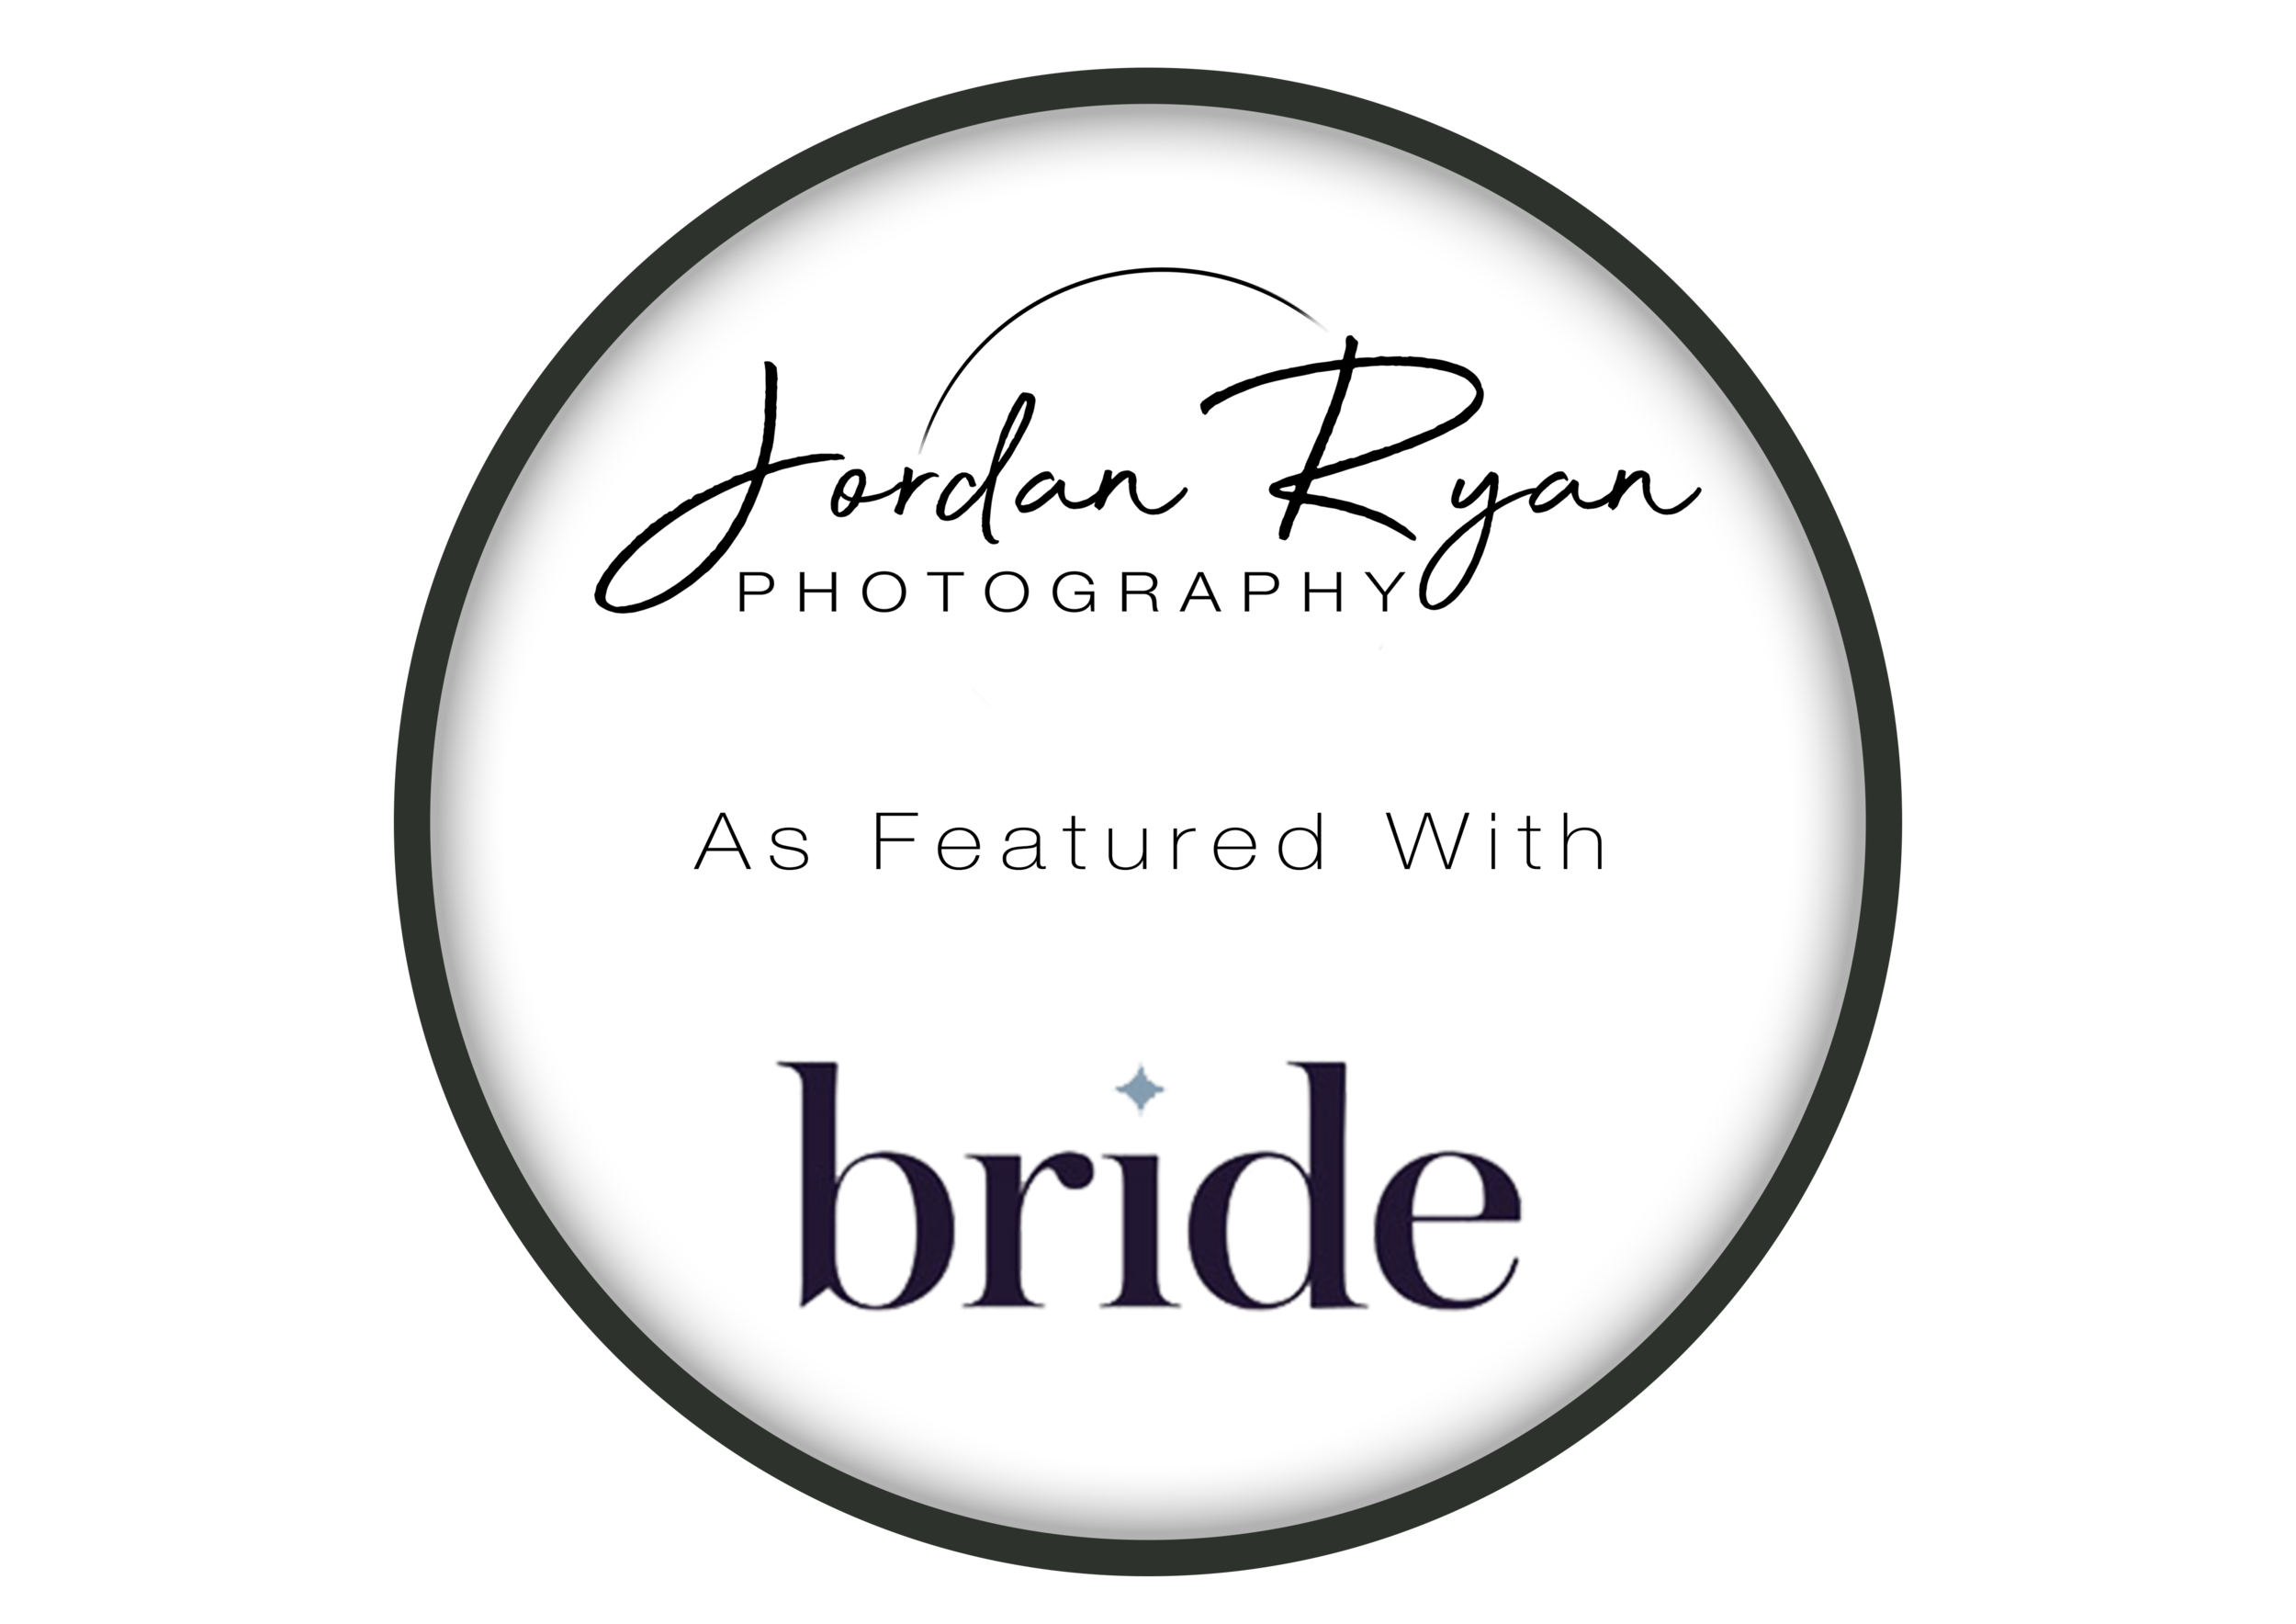 BrideMagazineBadge.png